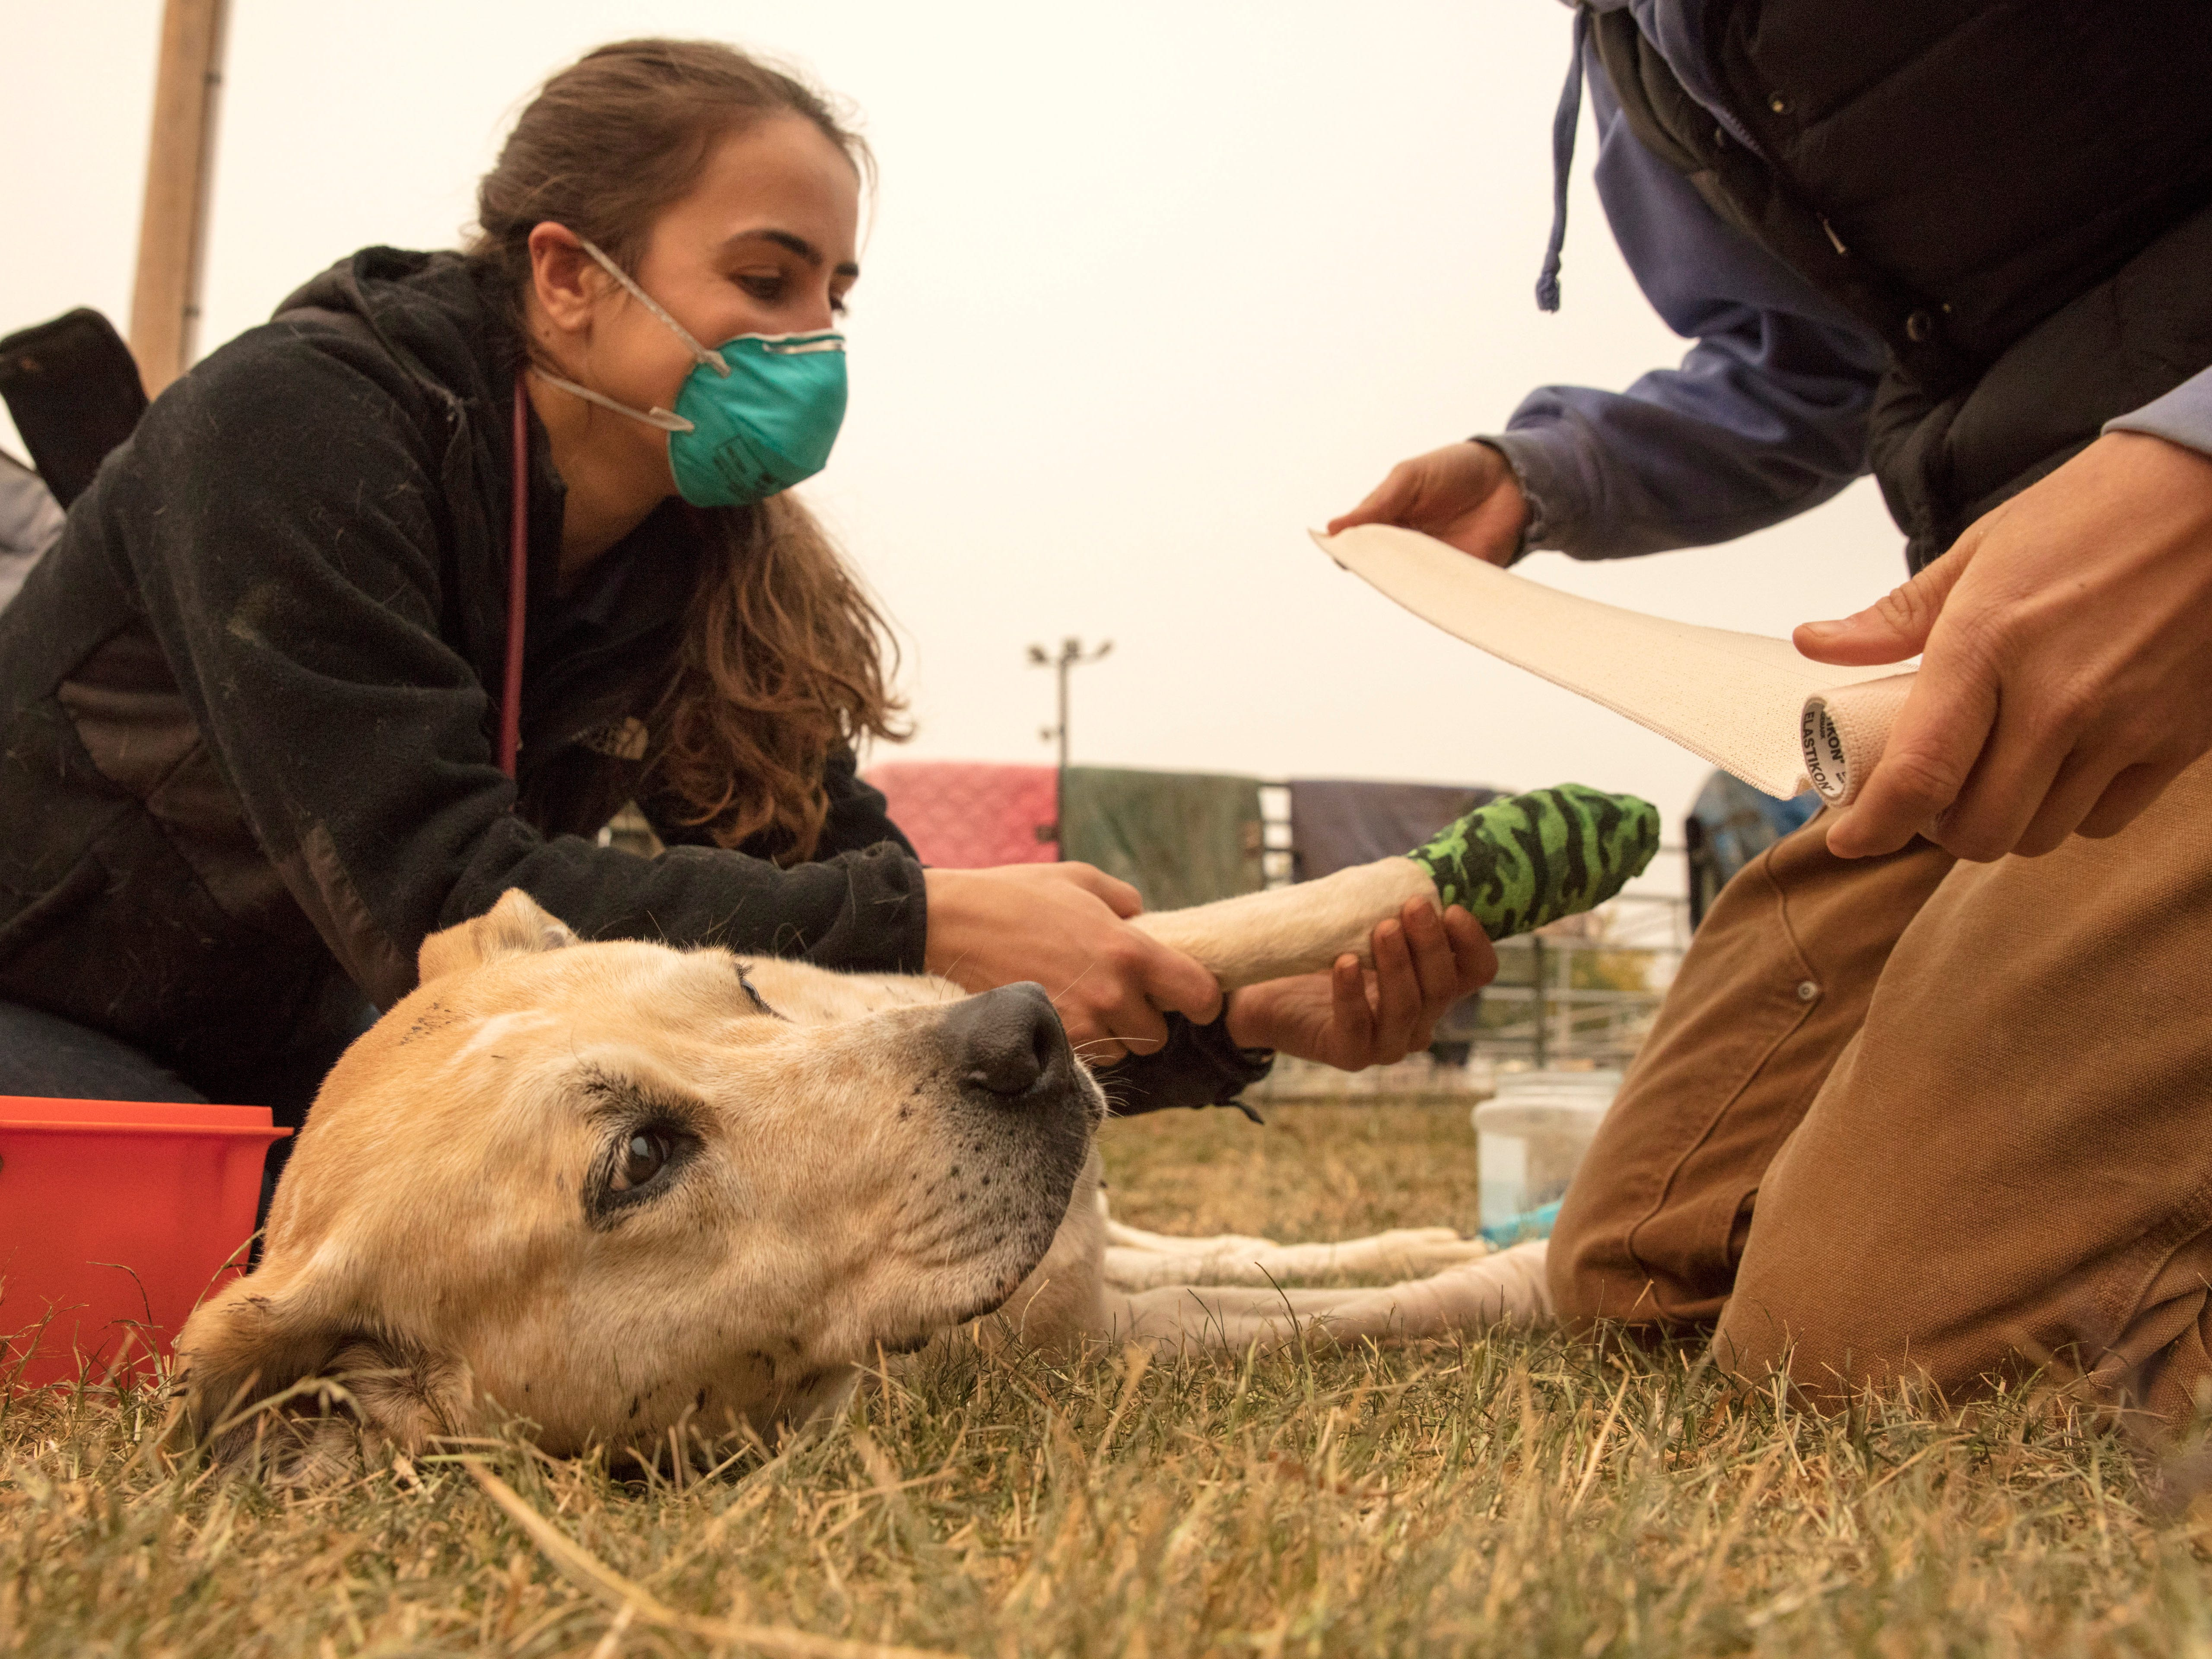 Members of the U.C. Davis Veterinary Emergency Response Team, Ashley Nola, left, and Catherine McFarren, tend to burns on a dog that was brought in to the Butte County Fair Grounds where large animals are being sheltered during the Camp Fire, on Nov. 10, 2018.